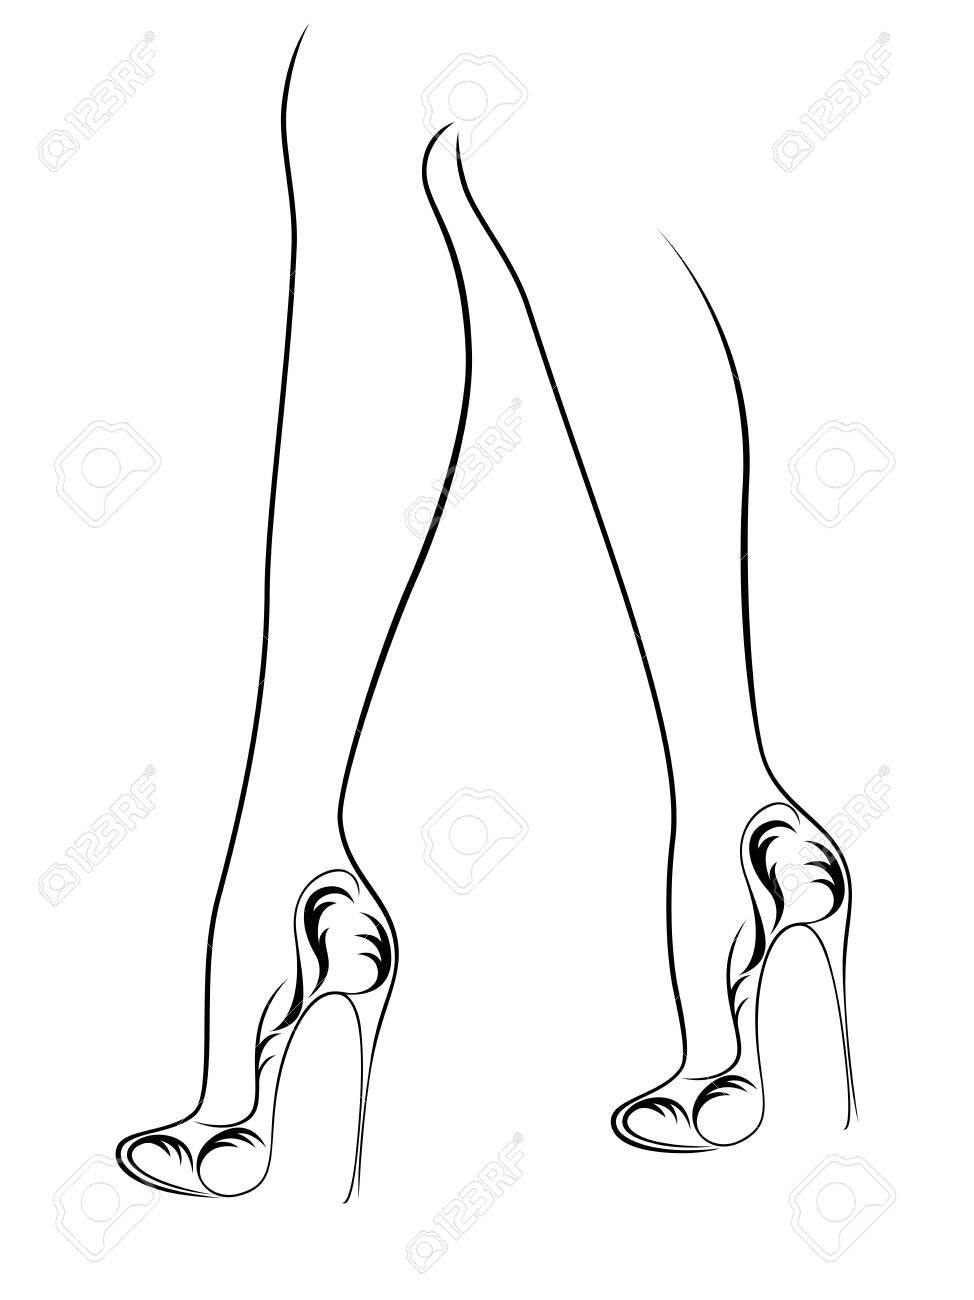 Sketching Outline Of Graceful Female Feet In Elegant Shoes With